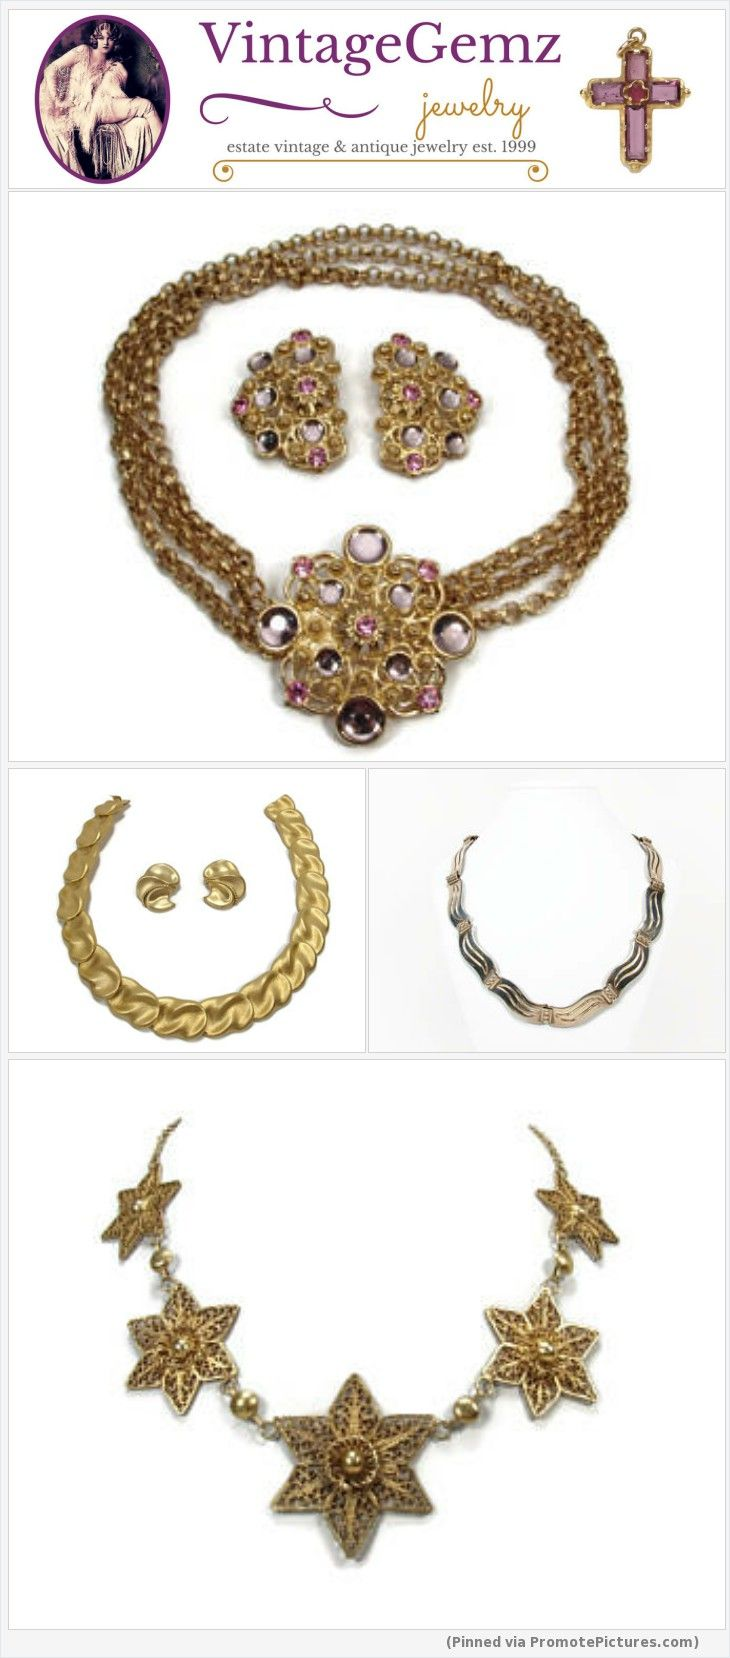 Vintage costume and fine jewelry for sale at VintageGemz! Shop now! #vintage #jewelry #jewellery #estate #costumejewelry #finejewelry #necklaces #etsy https://www.vintagegemz.com/?from_dashboard=https%3A%2F%2Fwww.etsy.com%2Fyour%2Fshops%2Fme%2Fpattern%2Fhome%3Fref%3Dseller-platform-mcnav